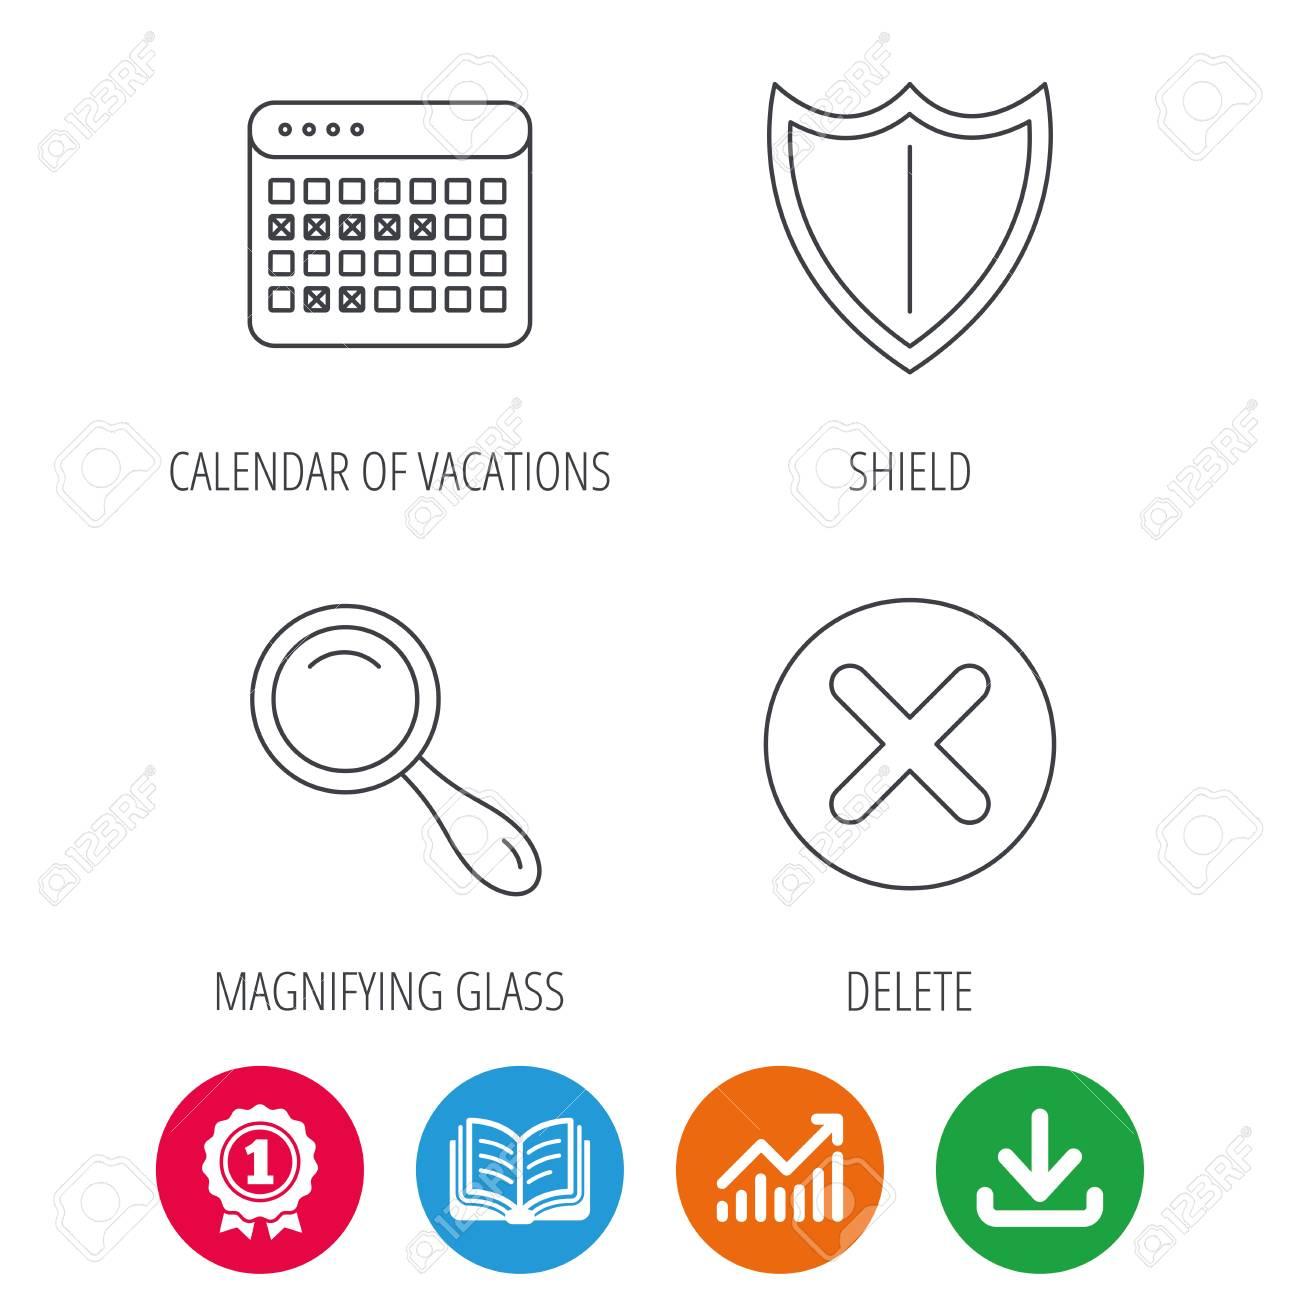 Calendar magnifying glass and delete icons shield linear sign banco de imagens calendar magnifying glass and delete icons shield linear sign award medal growth chart and opened book web icons download arrow ccuart Choice Image